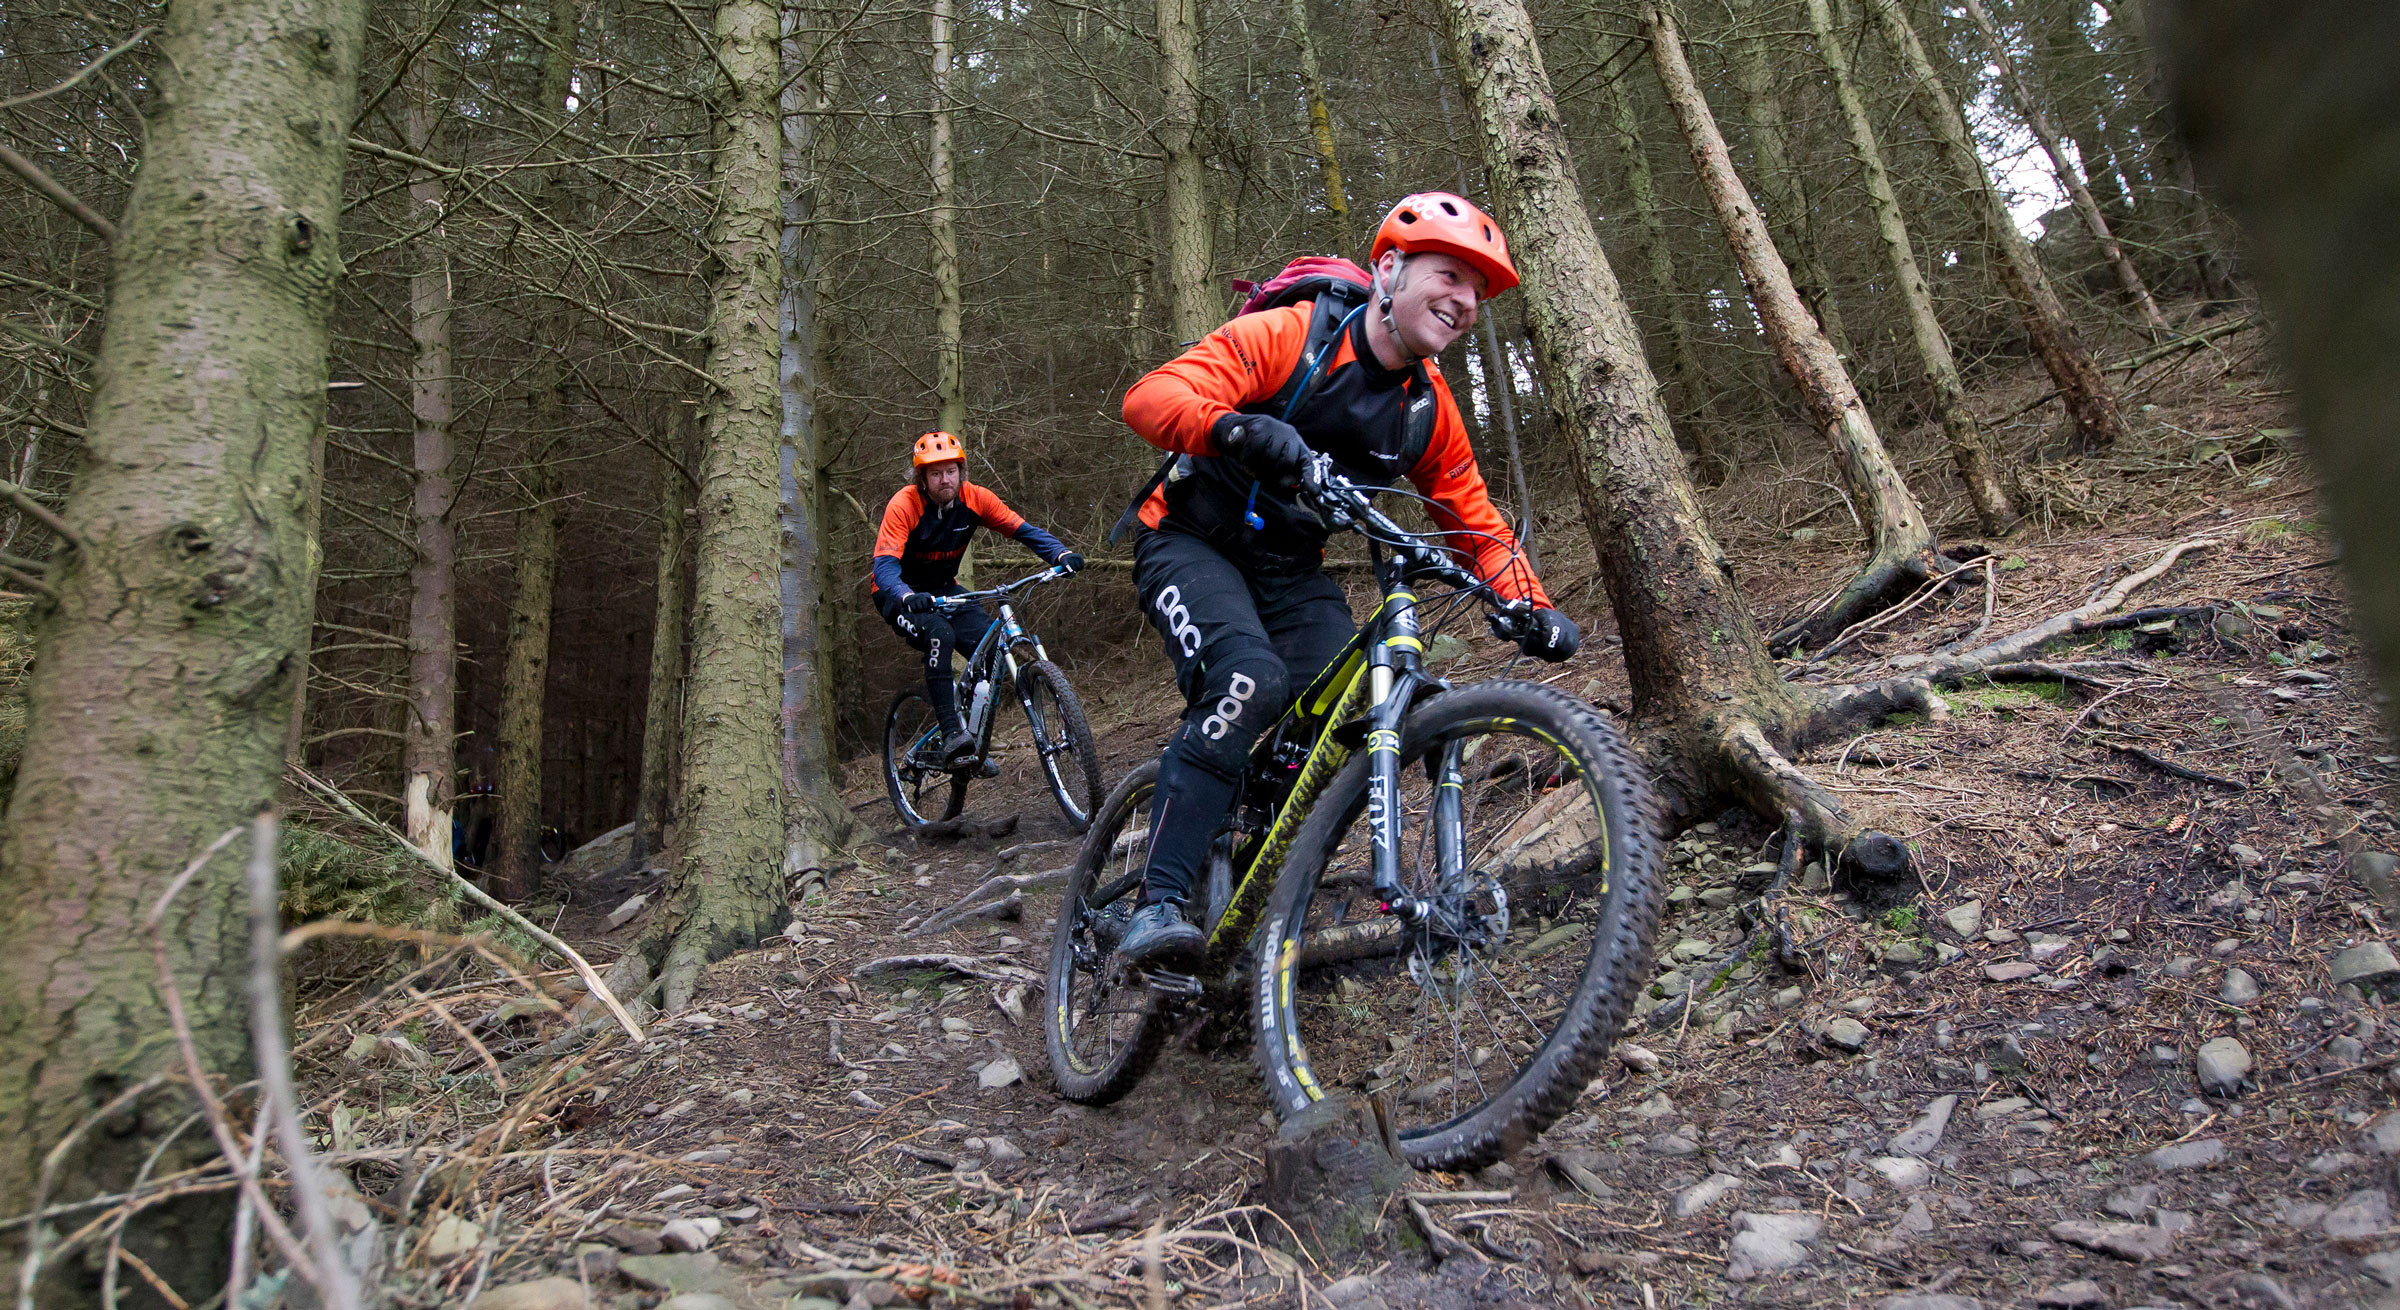 Neil & Andy, Ridelines Mountain Bike Instructors riding at Innerleithen.